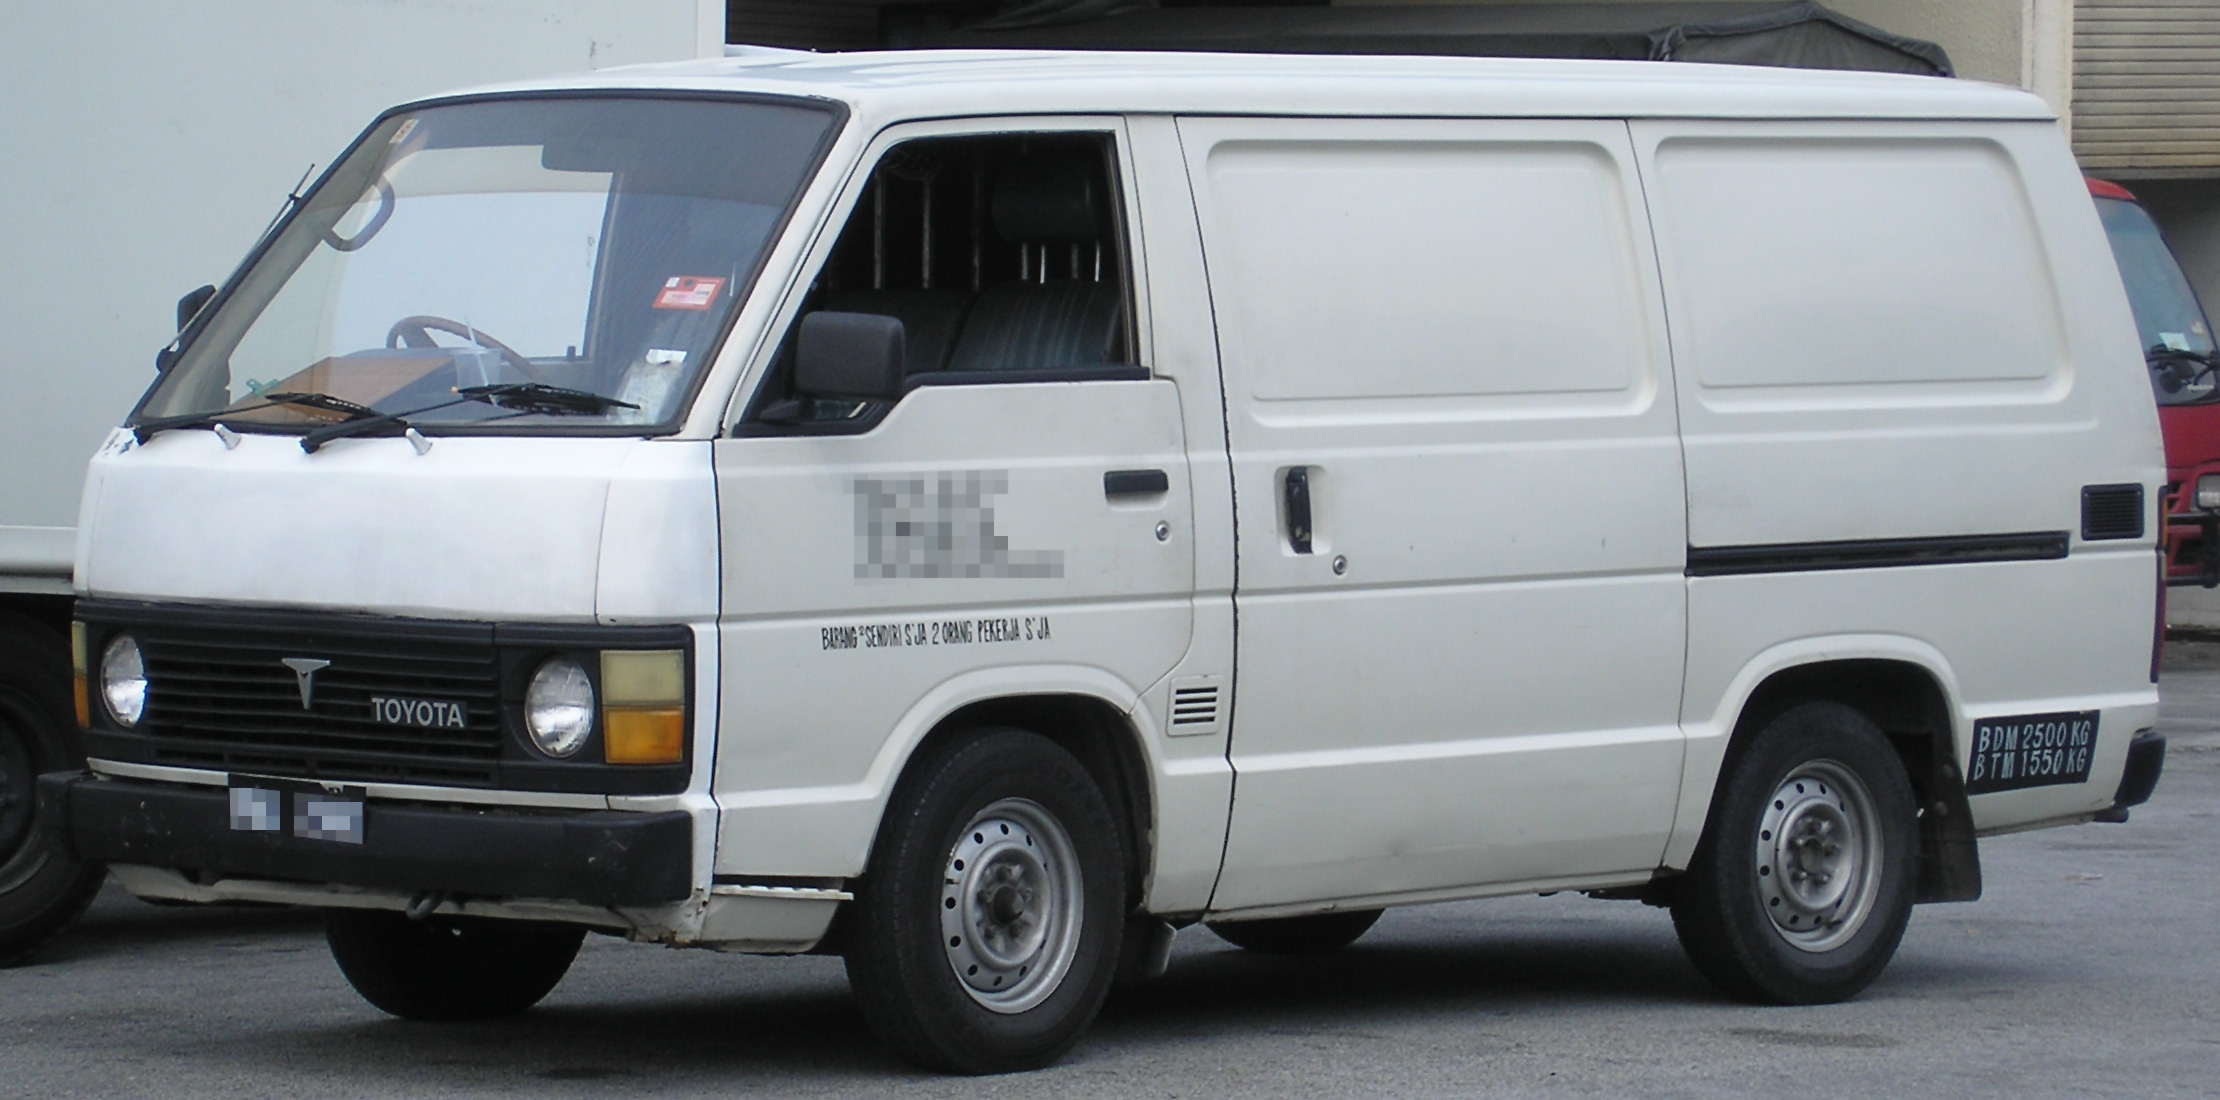 Toyota Hiace 6th Generation >> Cars that you remember from your childhood - Page 2 - Vehicles - GTAForums